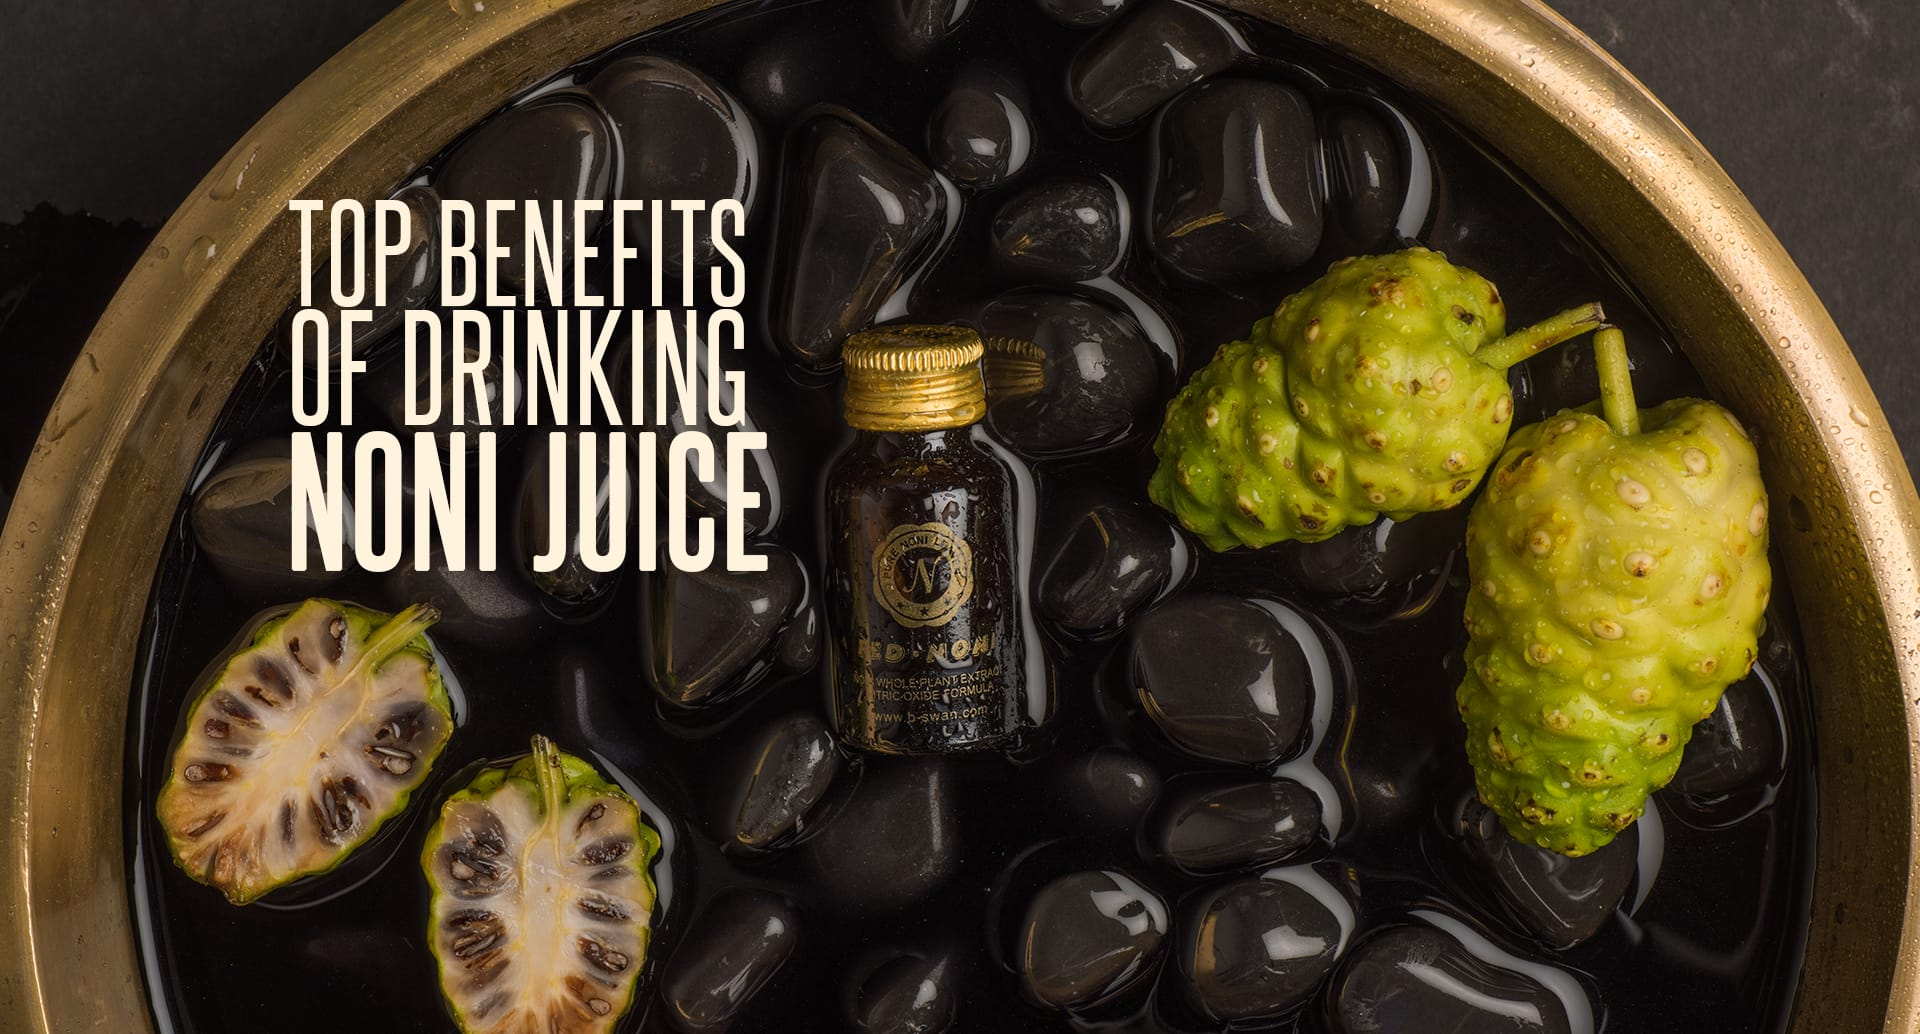 TOP BENEFITS OF DRINKING NONI JUICE